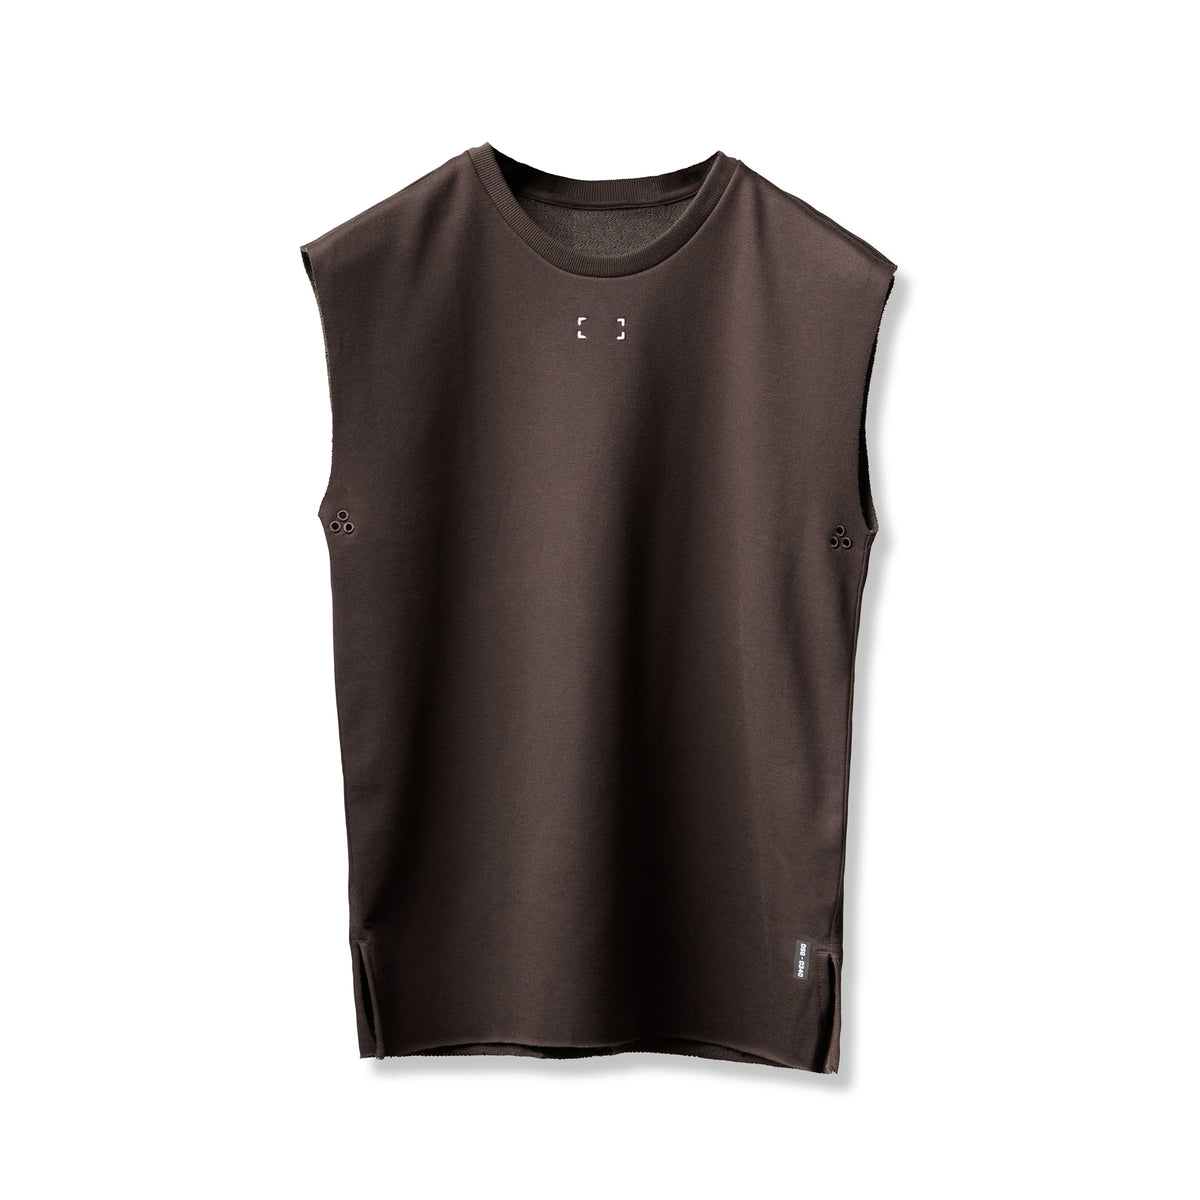 0340. French Terry Oversized Cutoff - Dark Earth